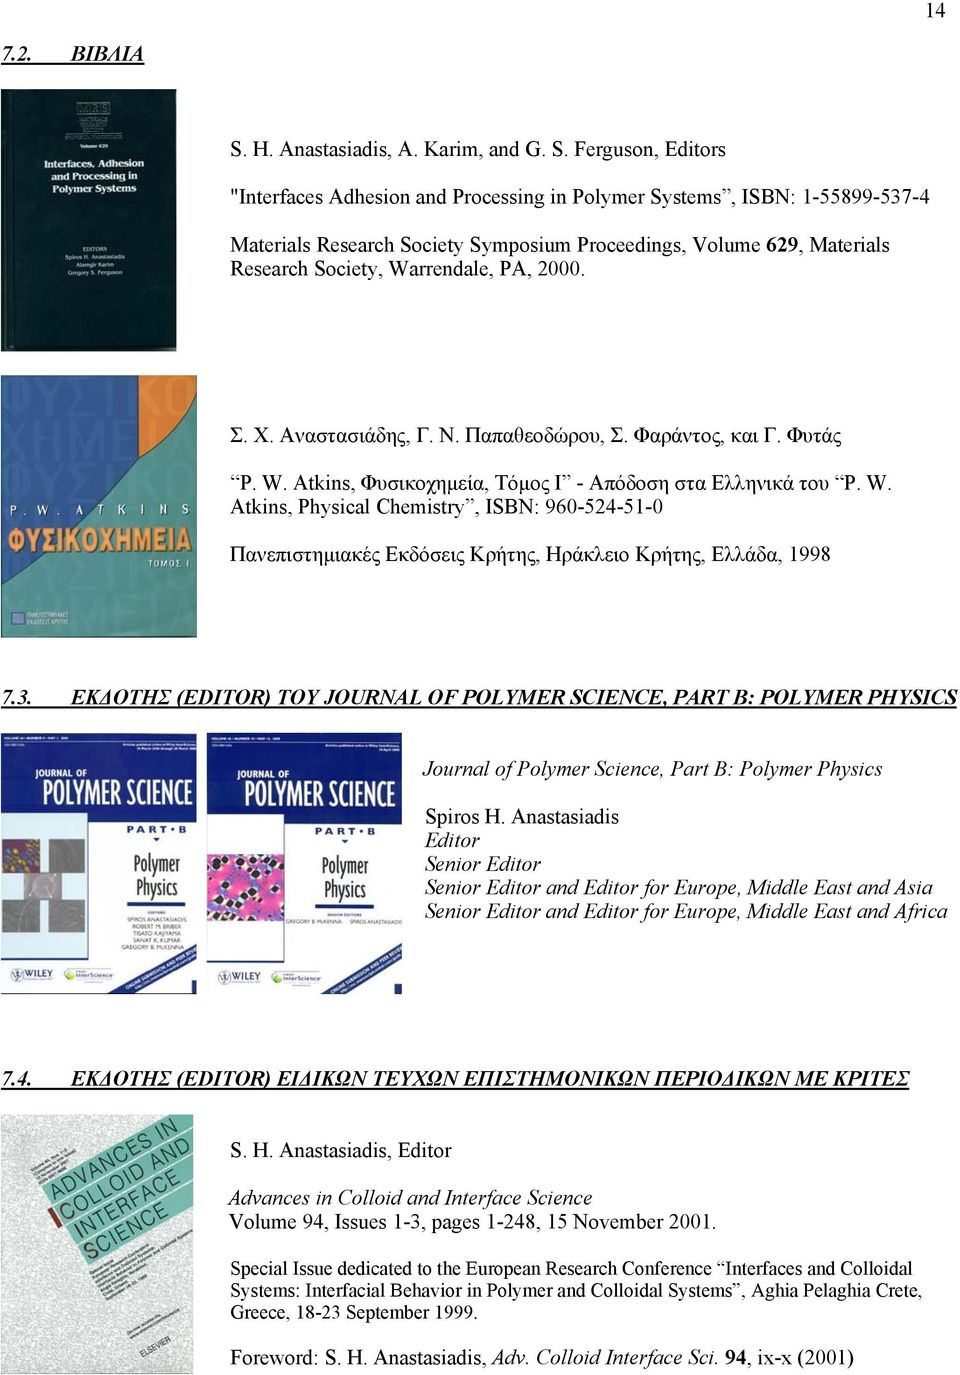 "Ferguson, Editors ""Interfaces Adhesion and Processing in Polymer Systems, ISBN: 1-55899-537-4 Materials Research Society Symposium Proceedings, Volume 629, Materials Research Society, Warrendale, PA,"